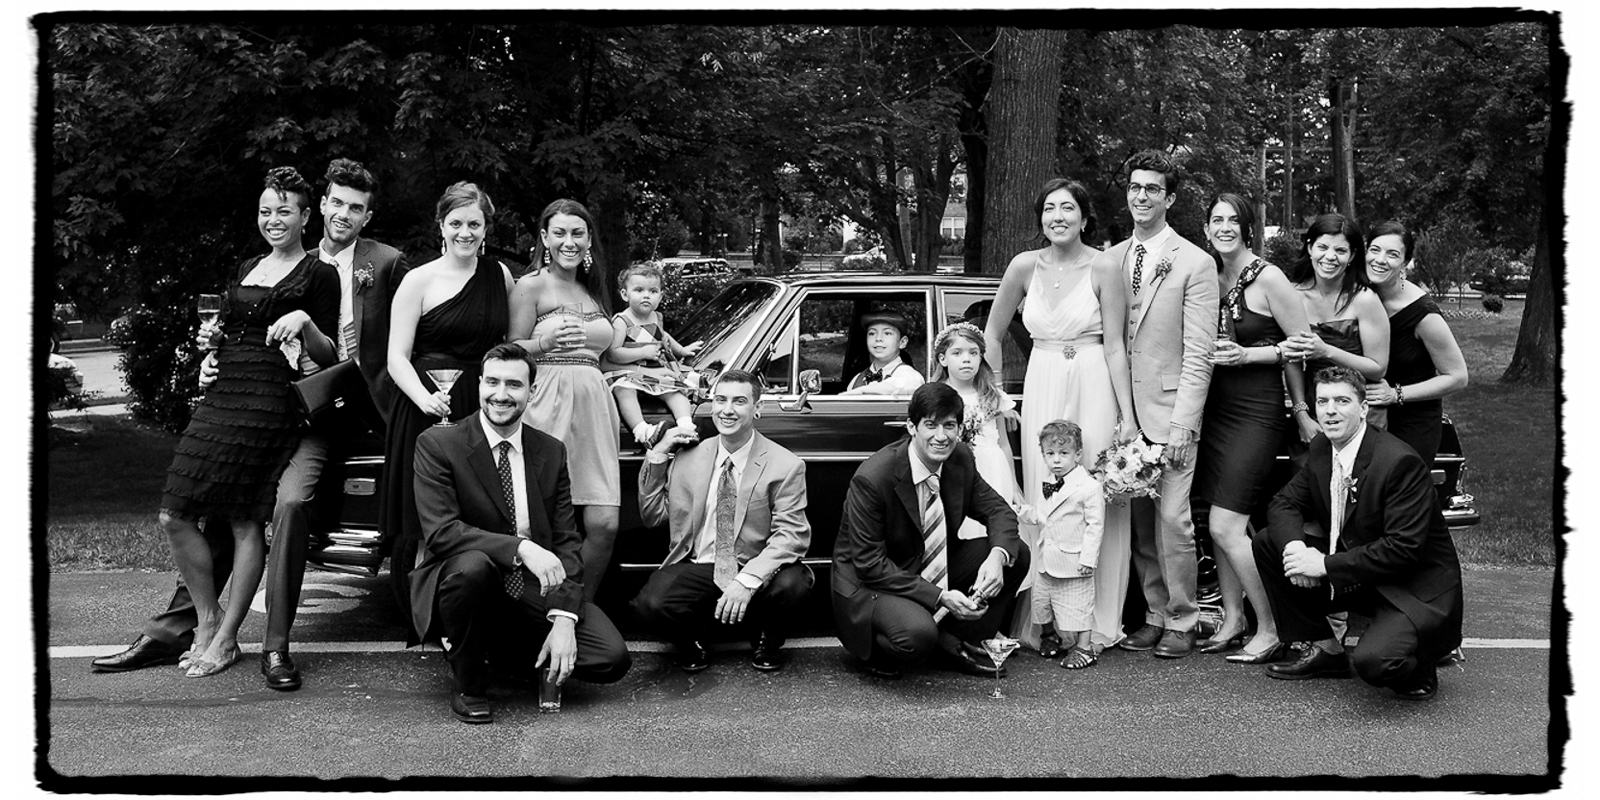 Grandpa's vintage Mercedes made a perfect backdrop for this bridal party.